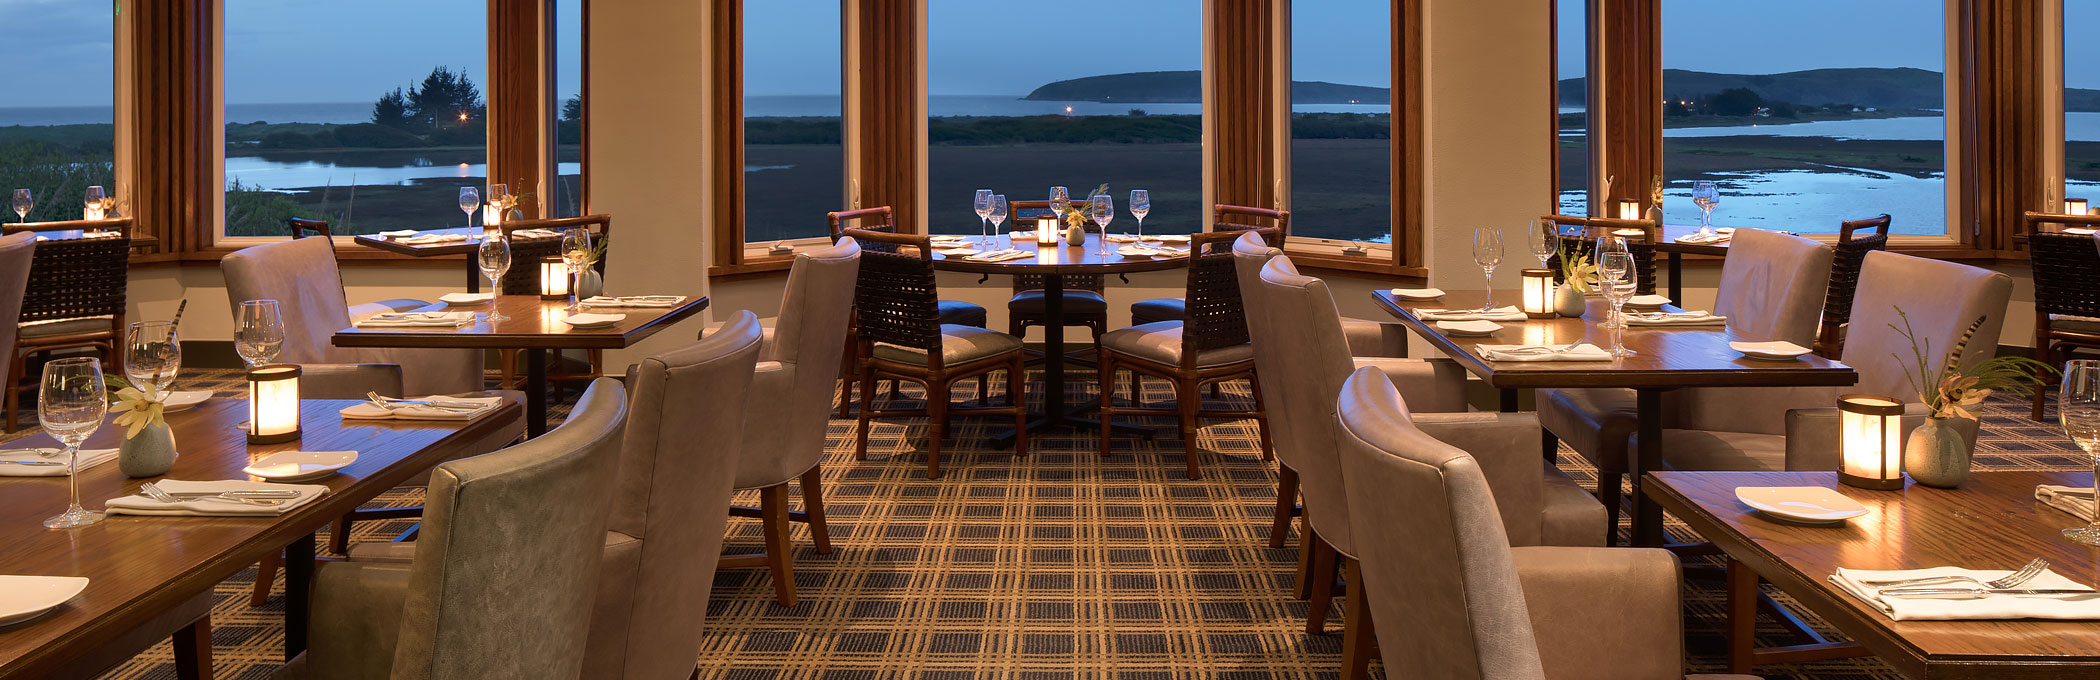 Drakes restaurant with wooden tables set for meal, sofa chairs & window panels with ocean view